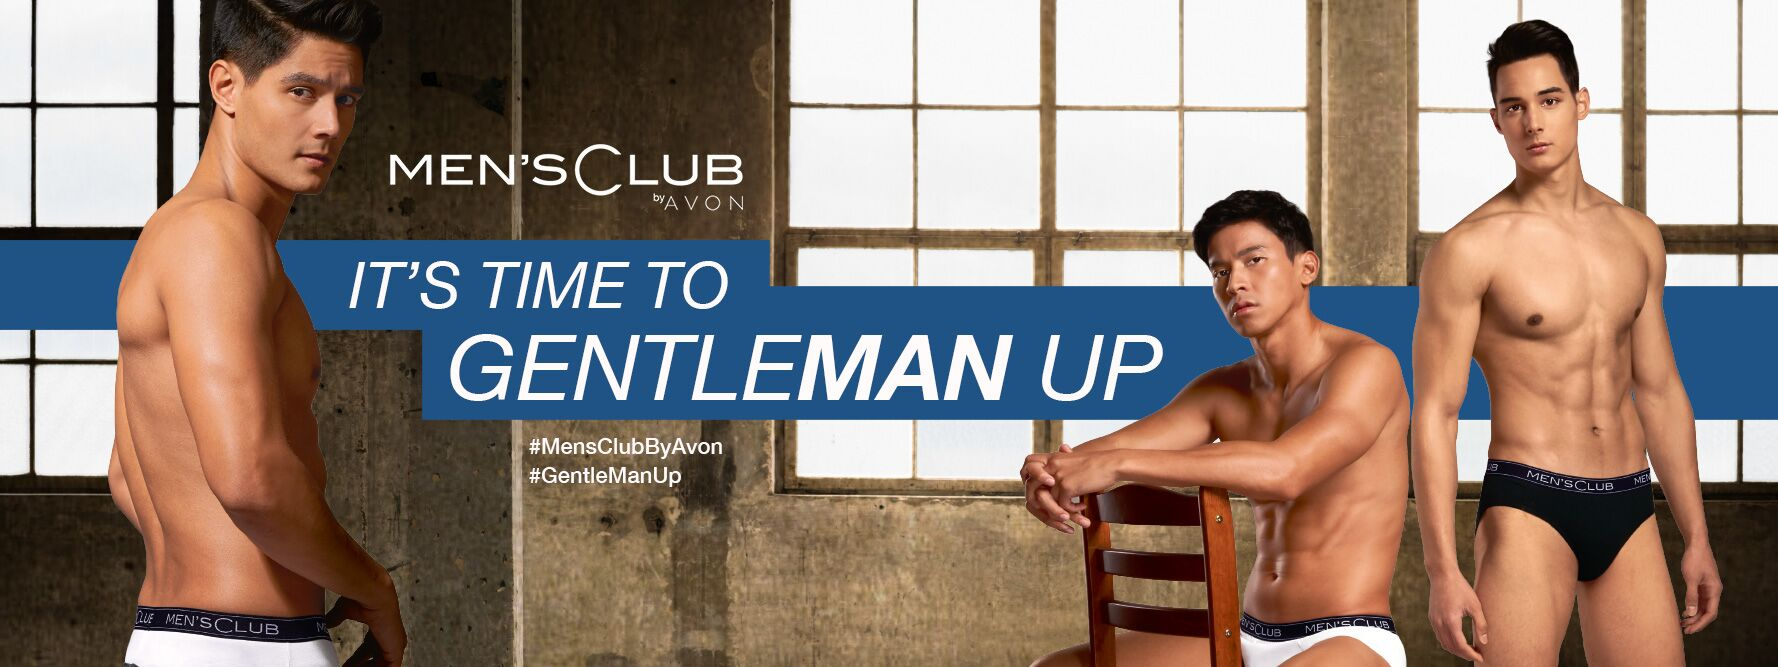 It's to Gentleman UP with Men's Club